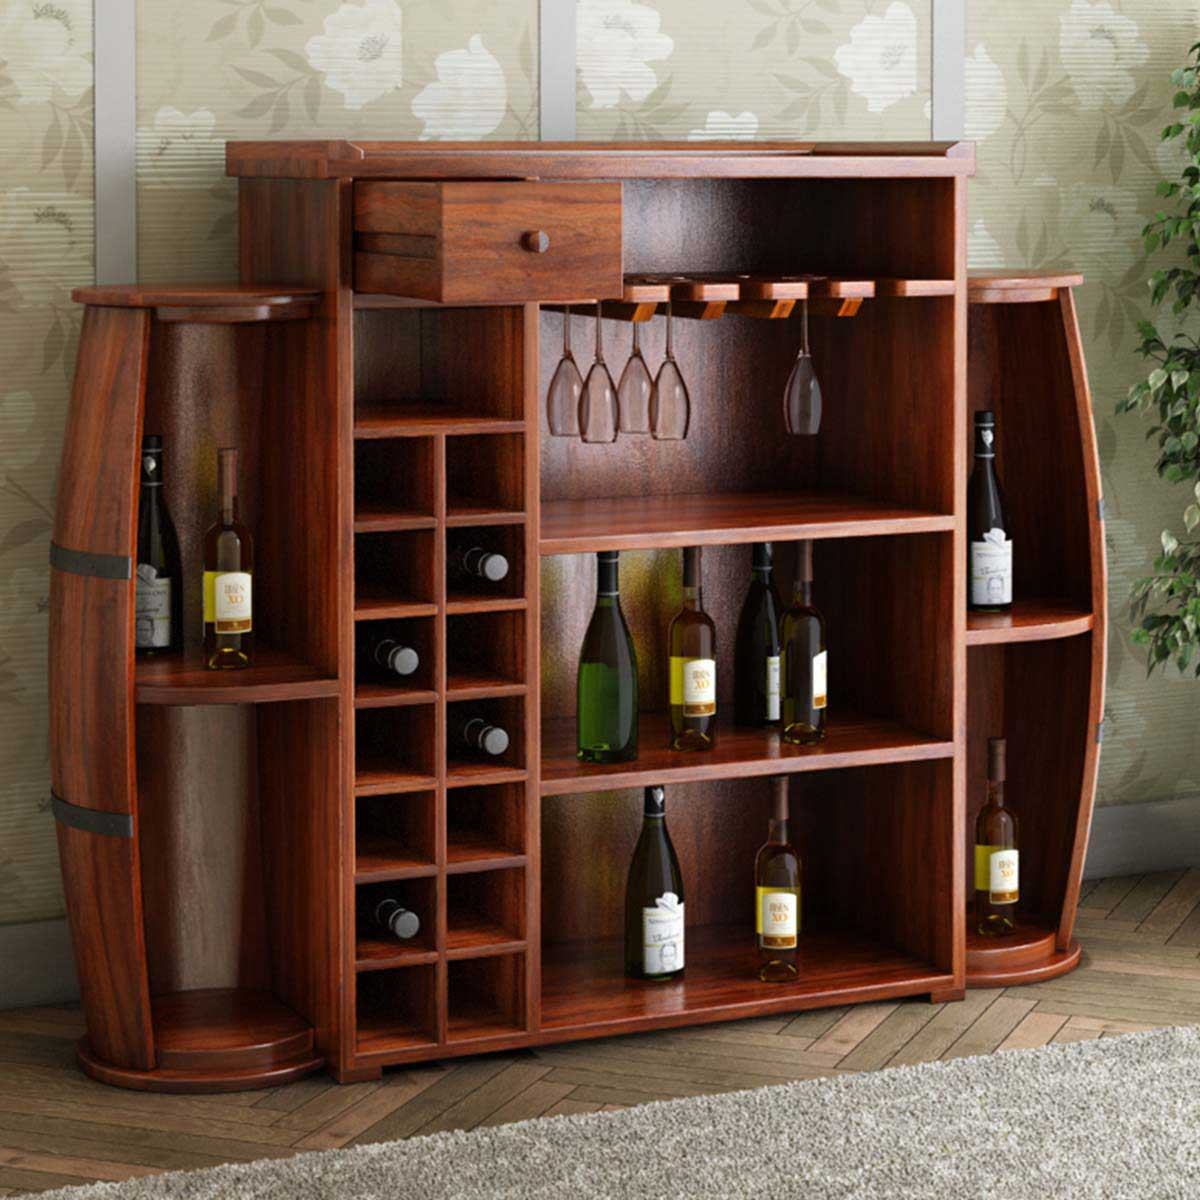 Custom Liquor Cabinets Joy Studio Design Gallery Best Design